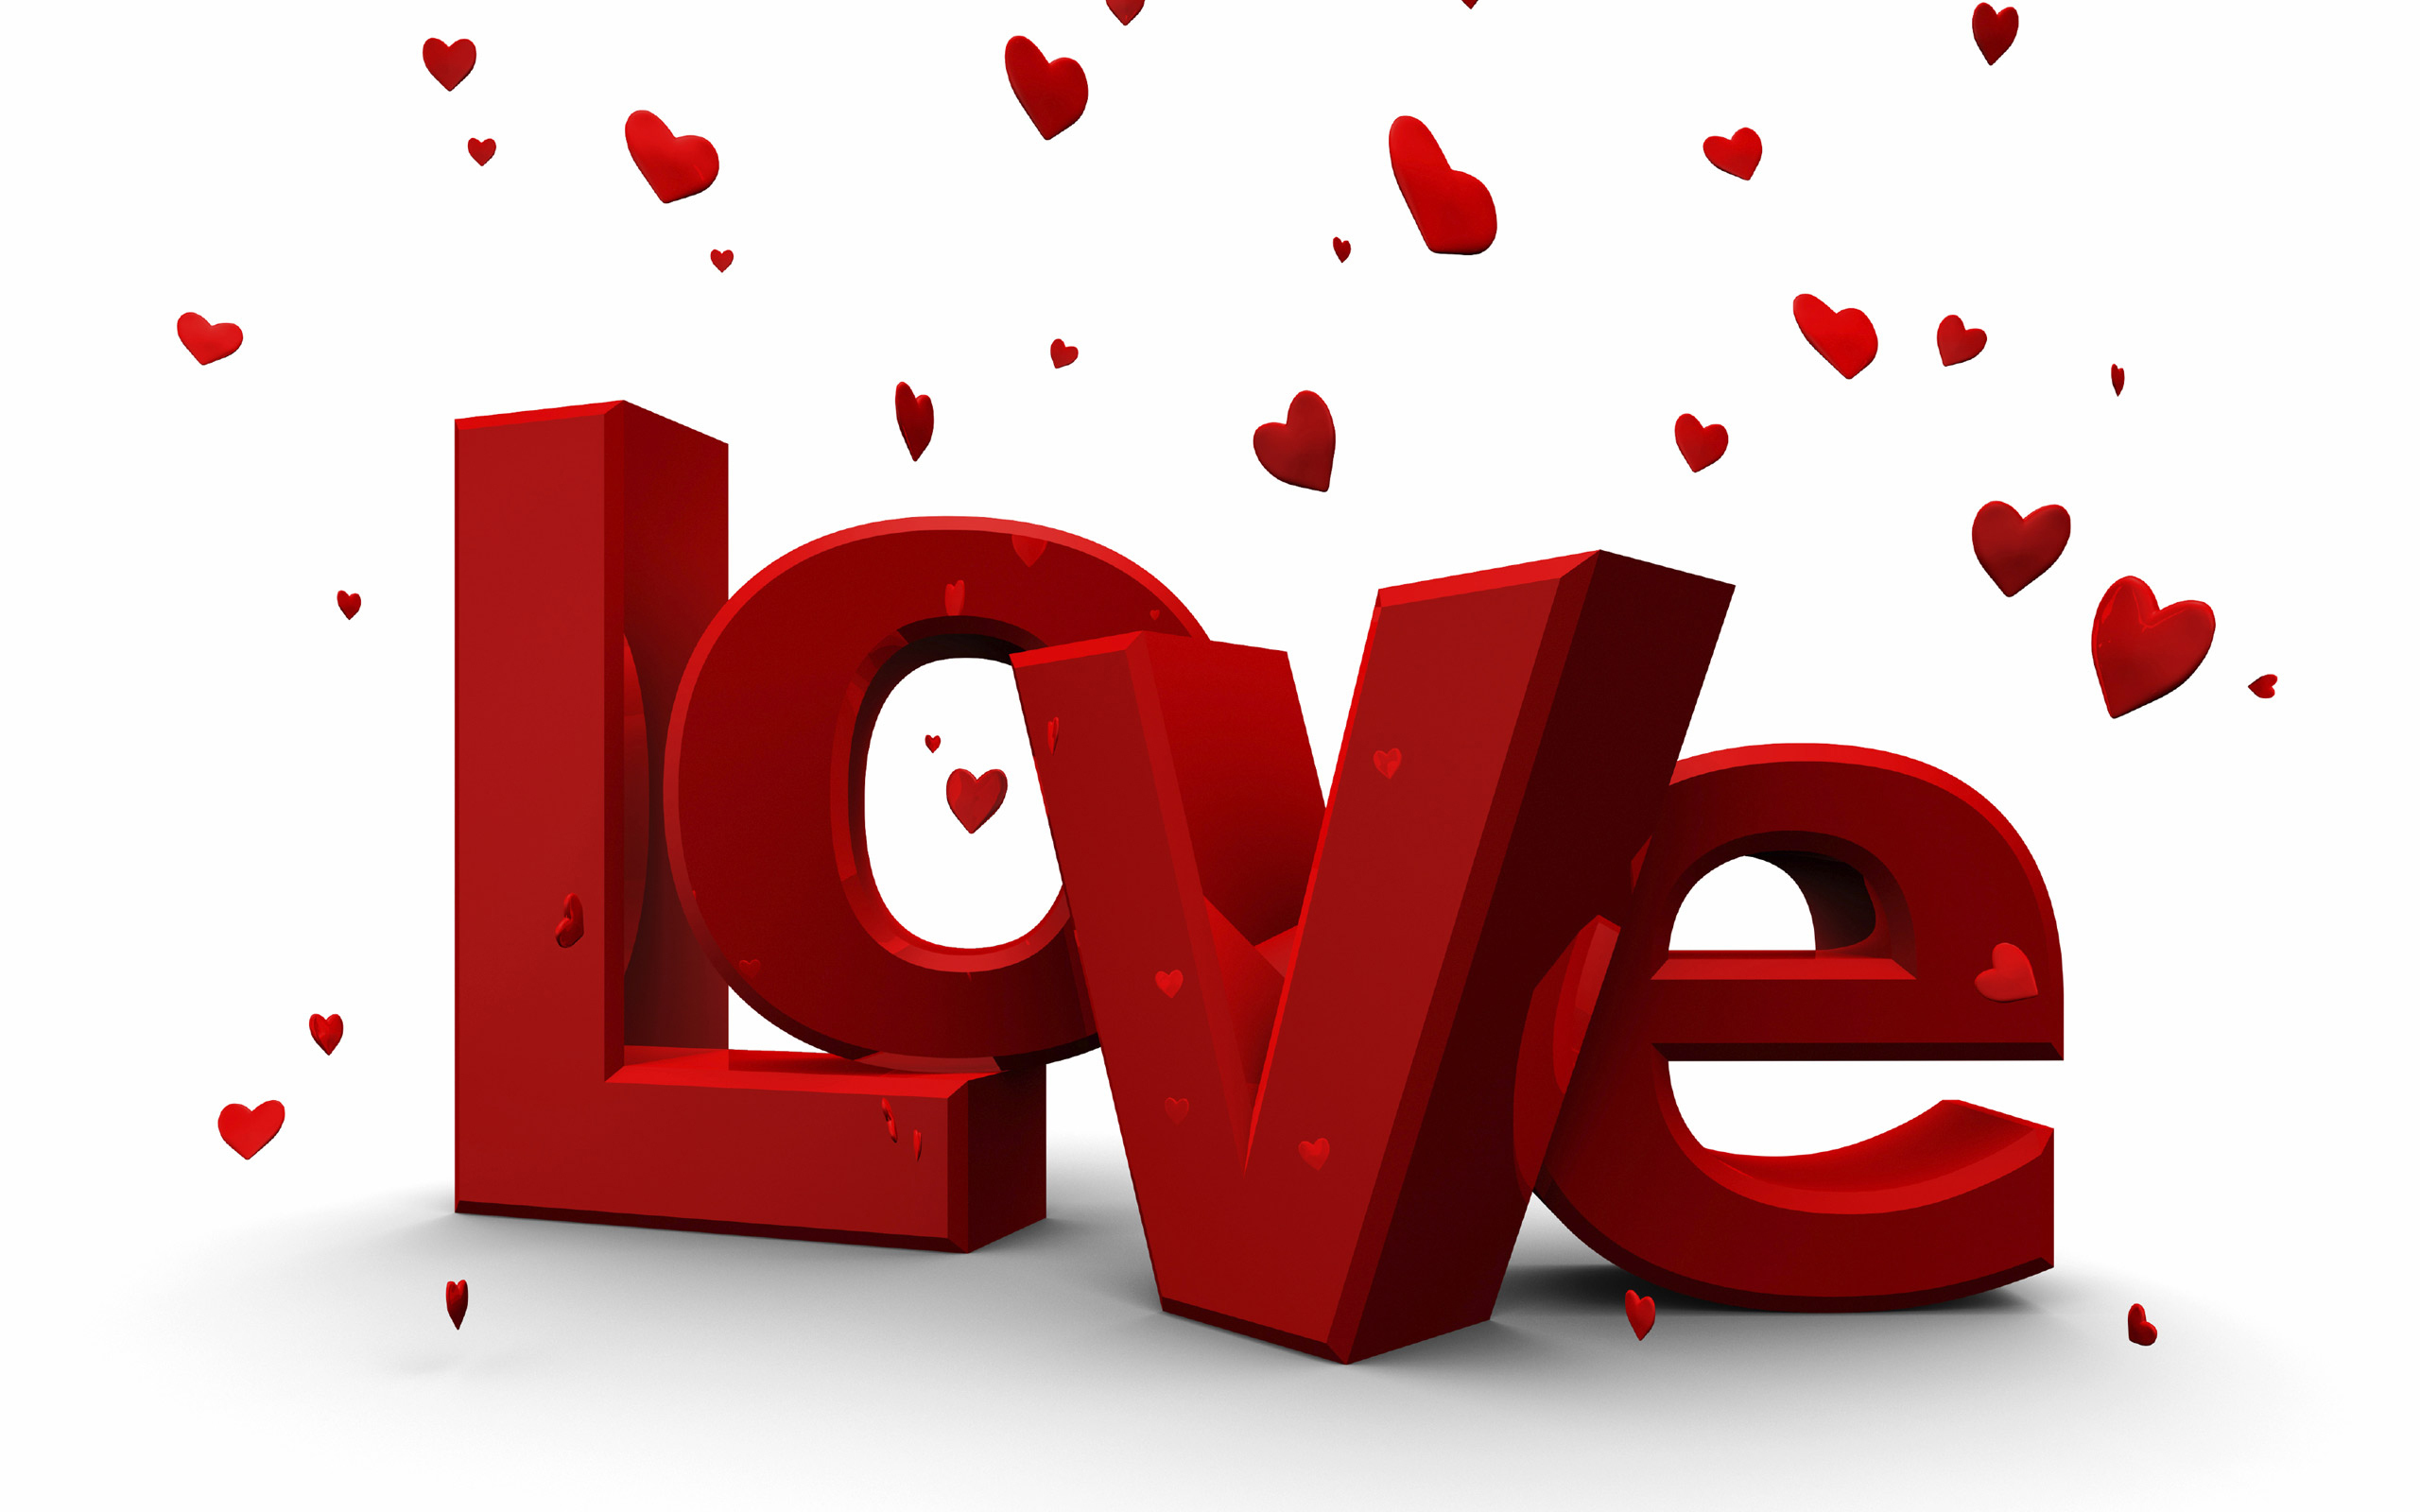 465223-valentines-day-images